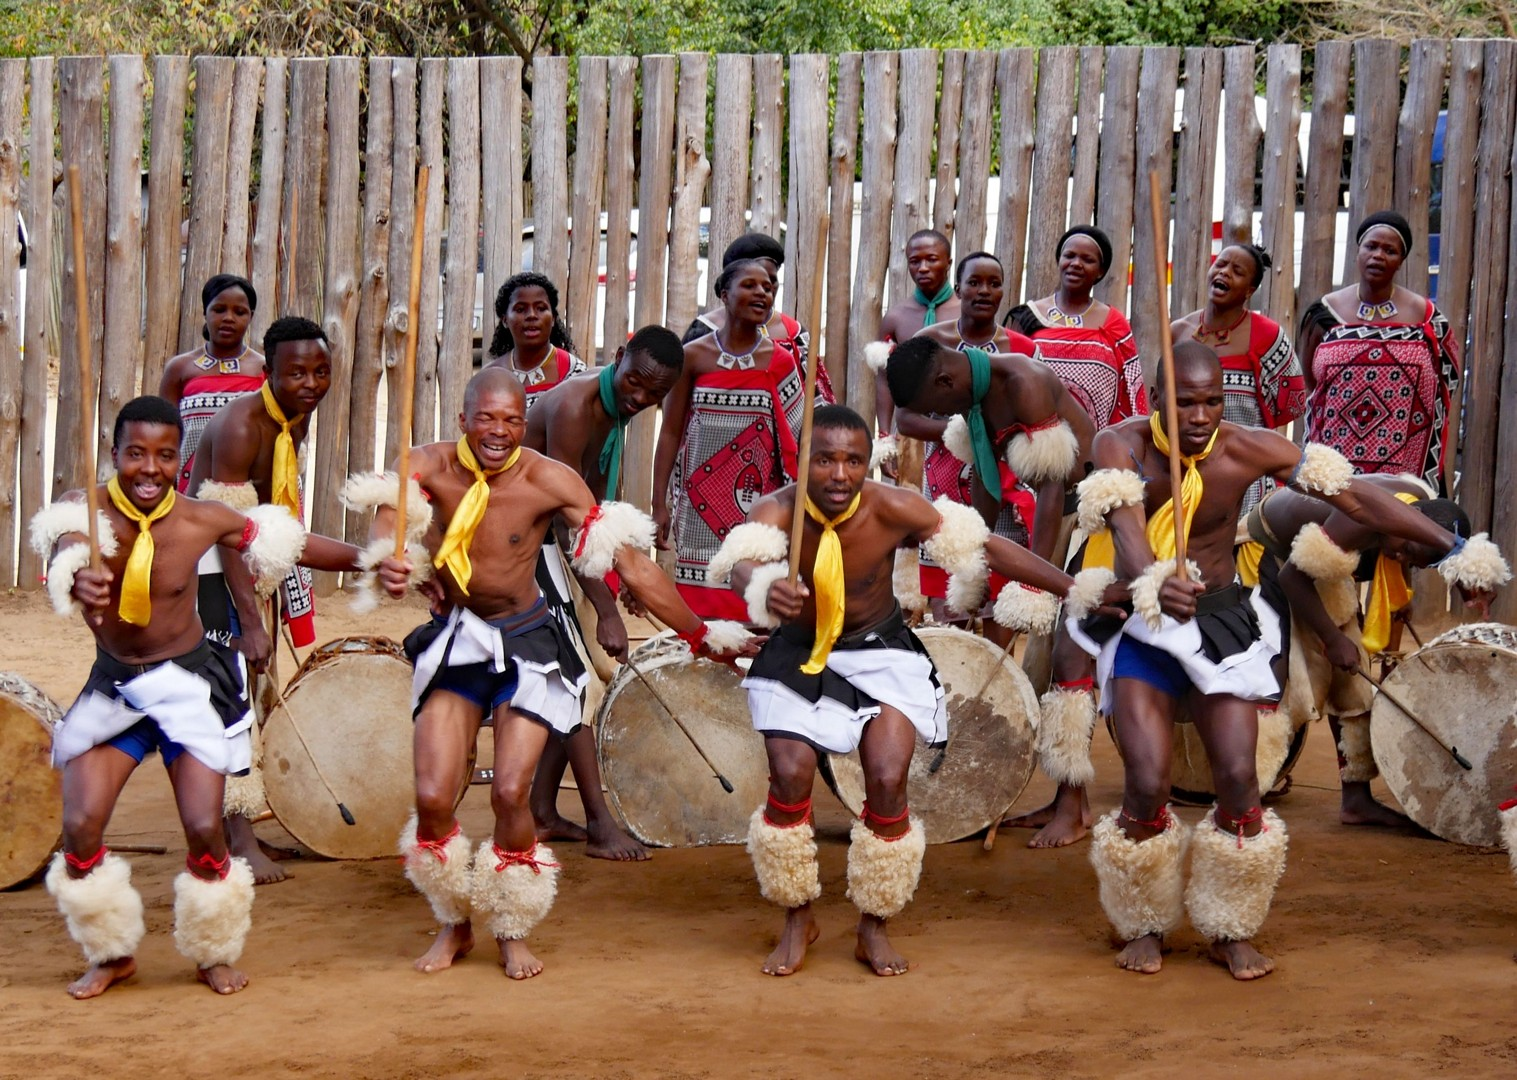 african-culture-and-wildlife-africa-swaziland-singletrack-and-sundowners-guided-mountain-bike-holiday.jpg - Swaziland - Singletrack and Sundowners - Guided Mountain Bike Holiday - Mountain Biking